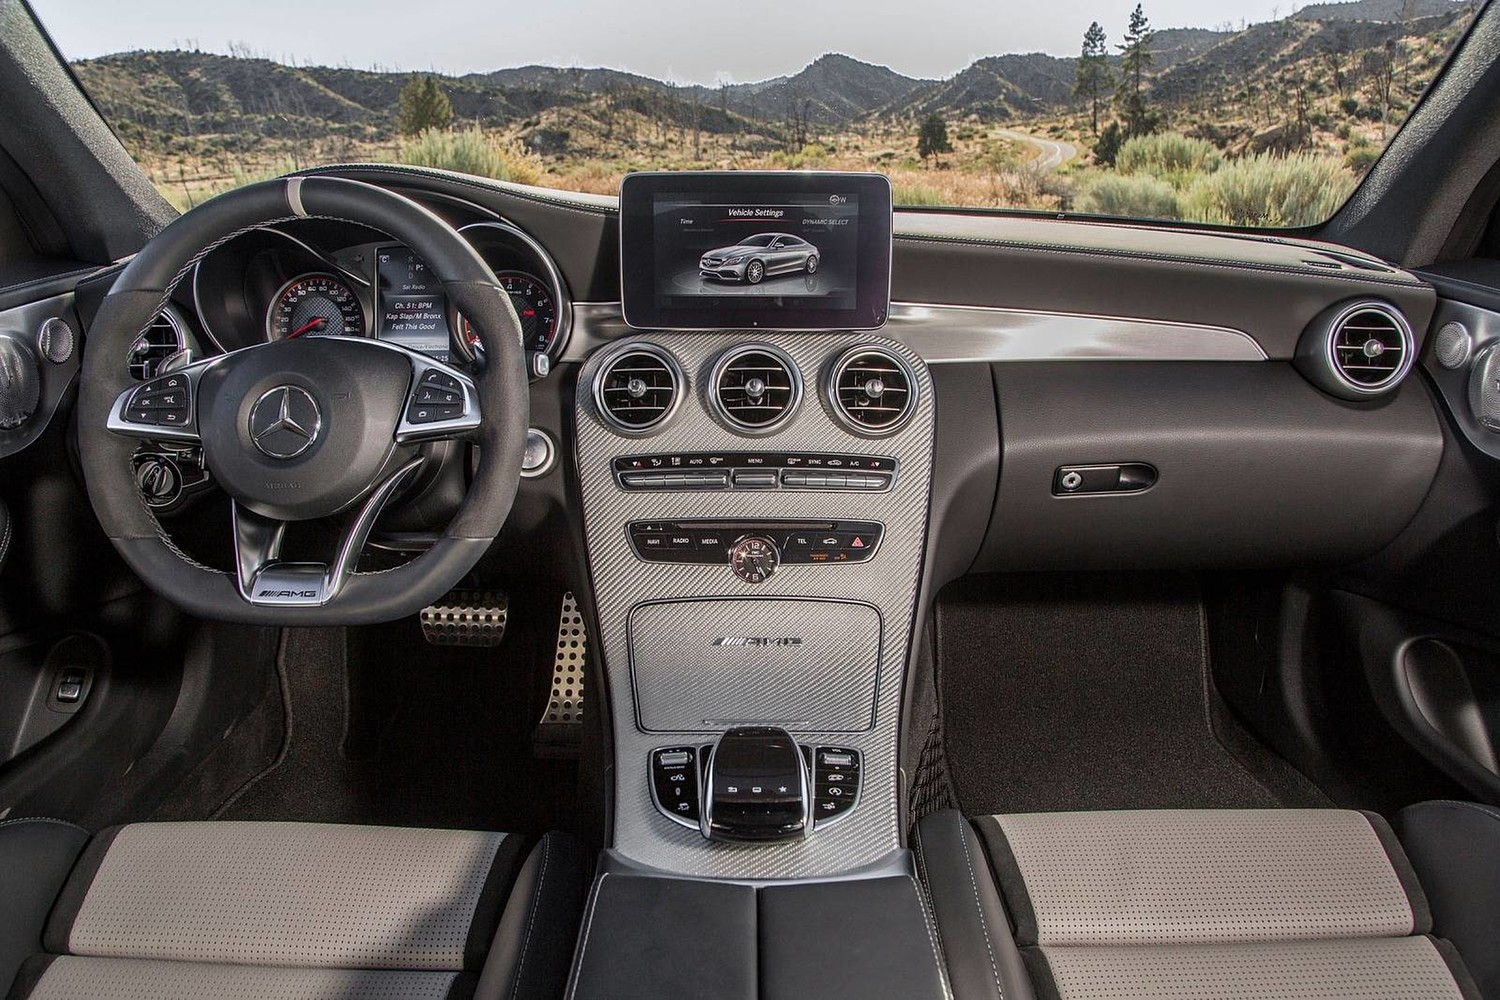 2018 Mercedes-Benz C-Class AMG C 63 S Coupe Dashboard Shown